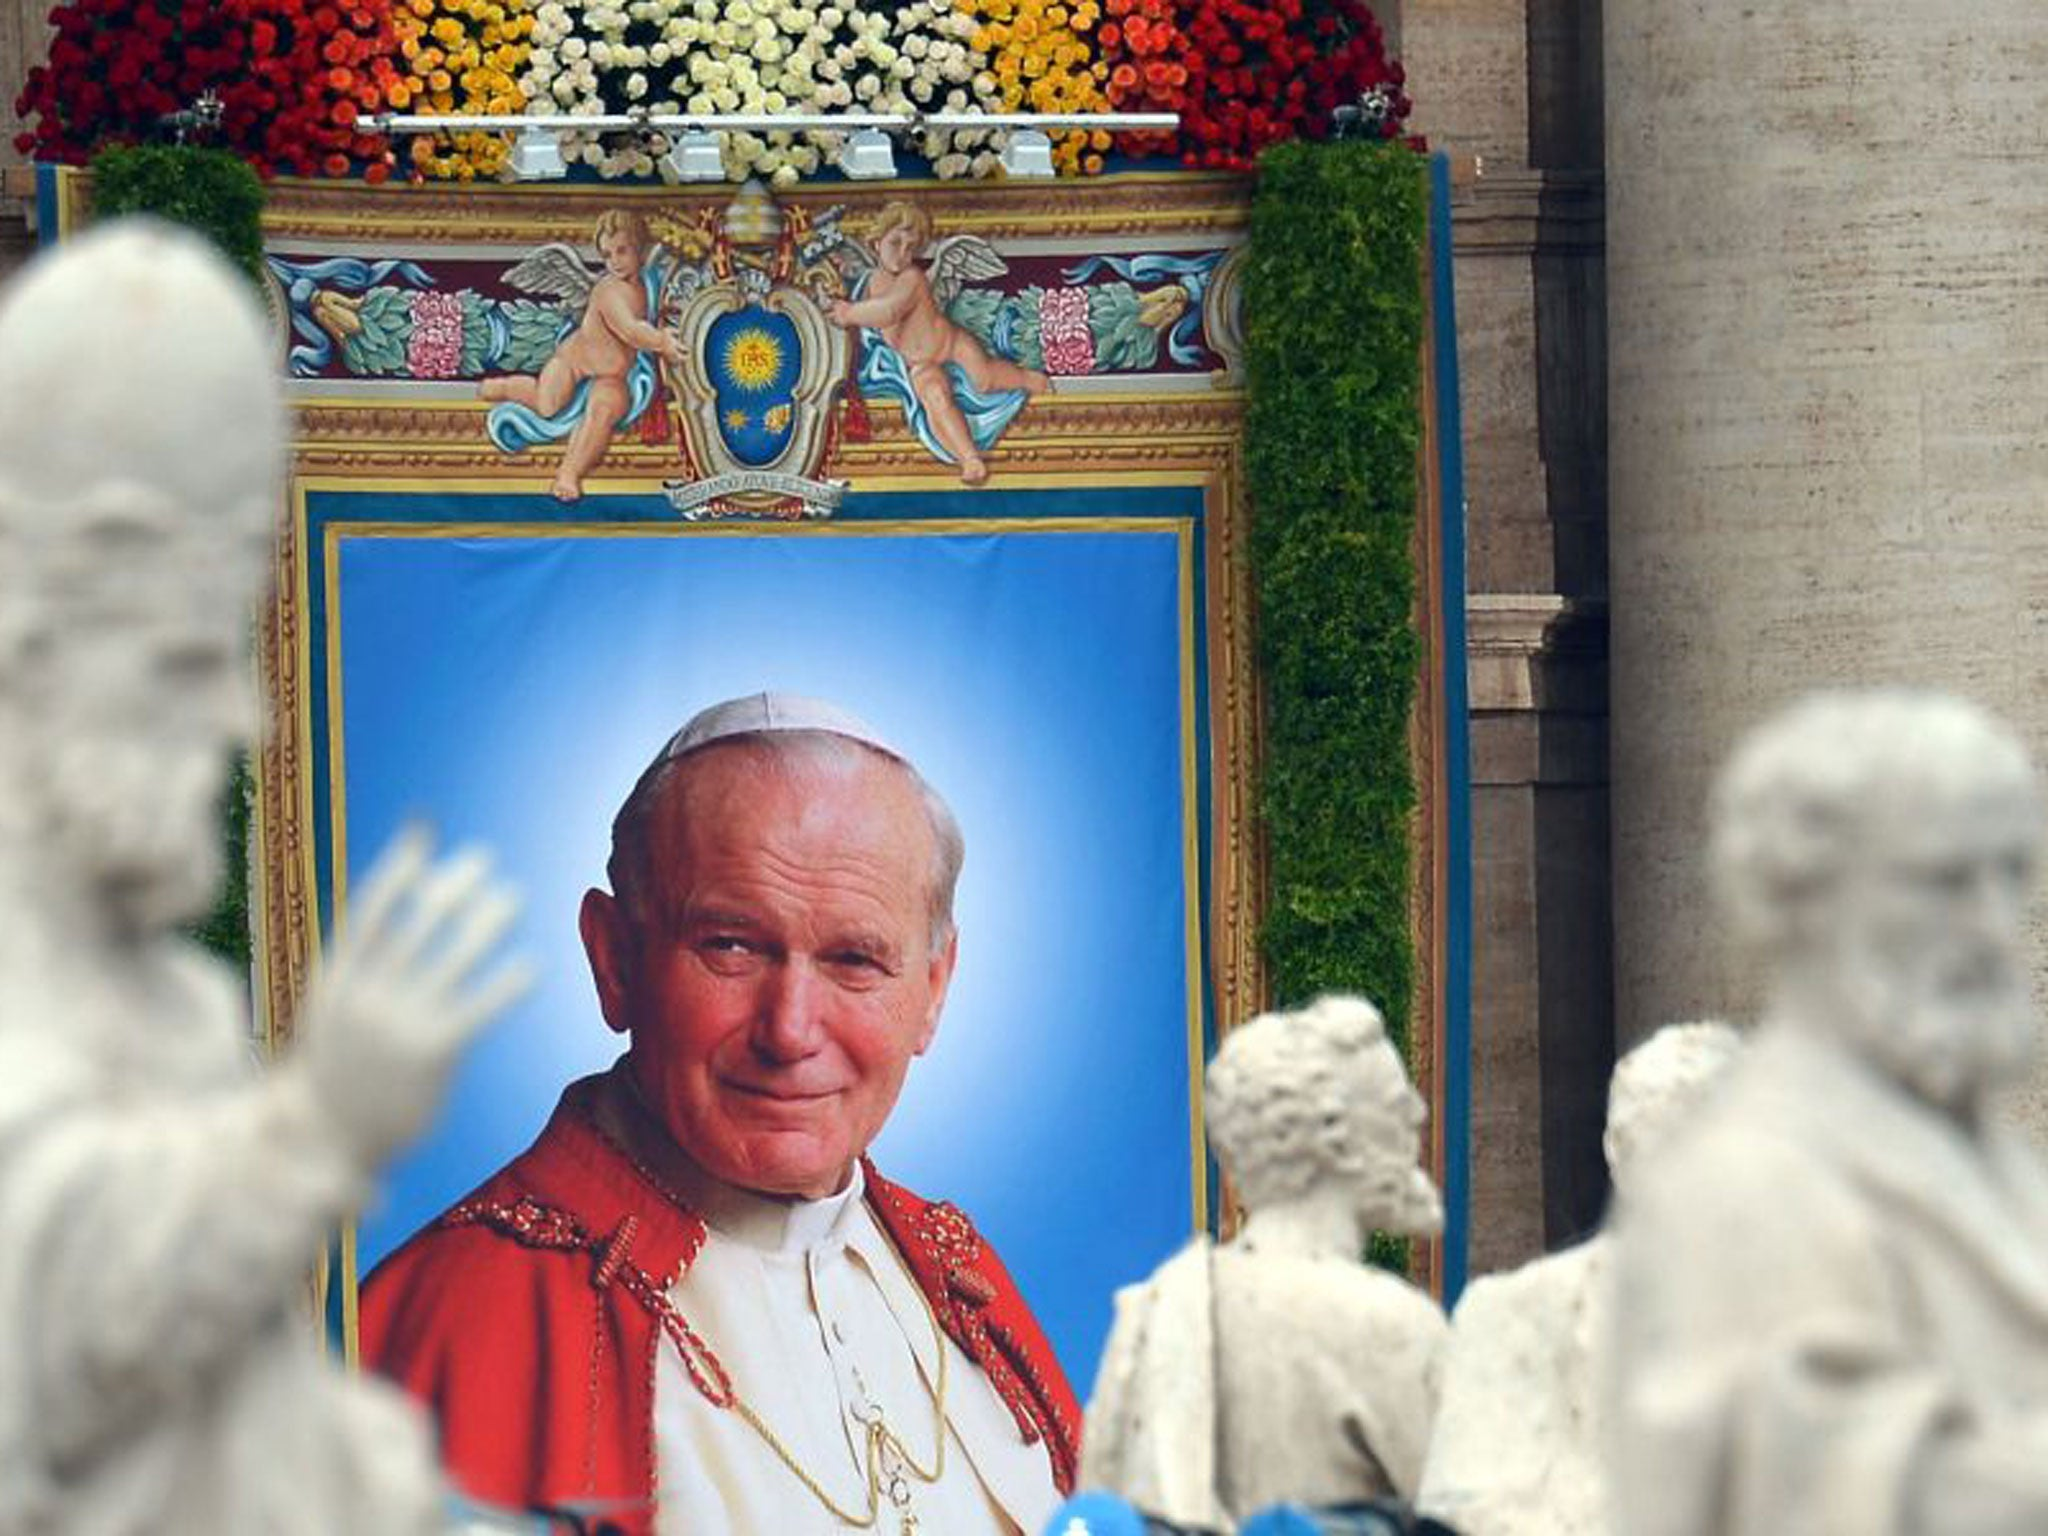 Pope John Paul II - latest news, breaking stories and comment - The